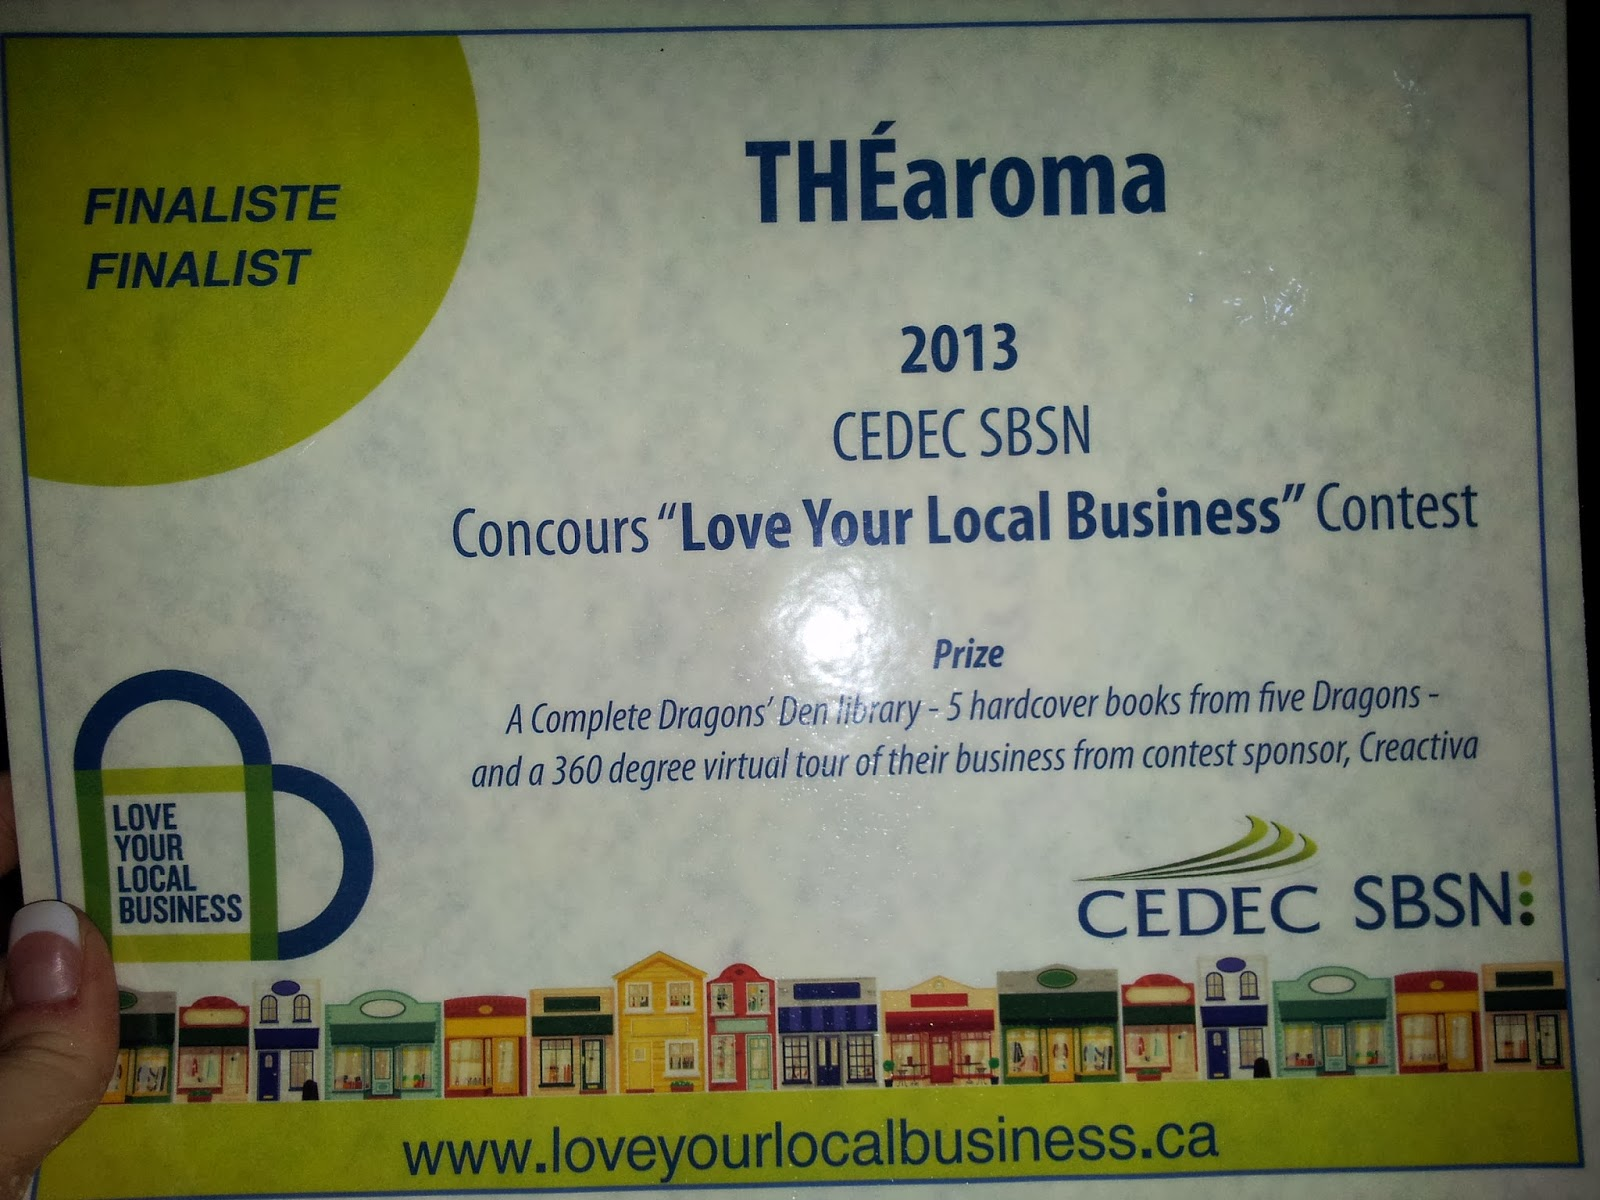 TEAroma, finalist for Love Your Local Business 2013